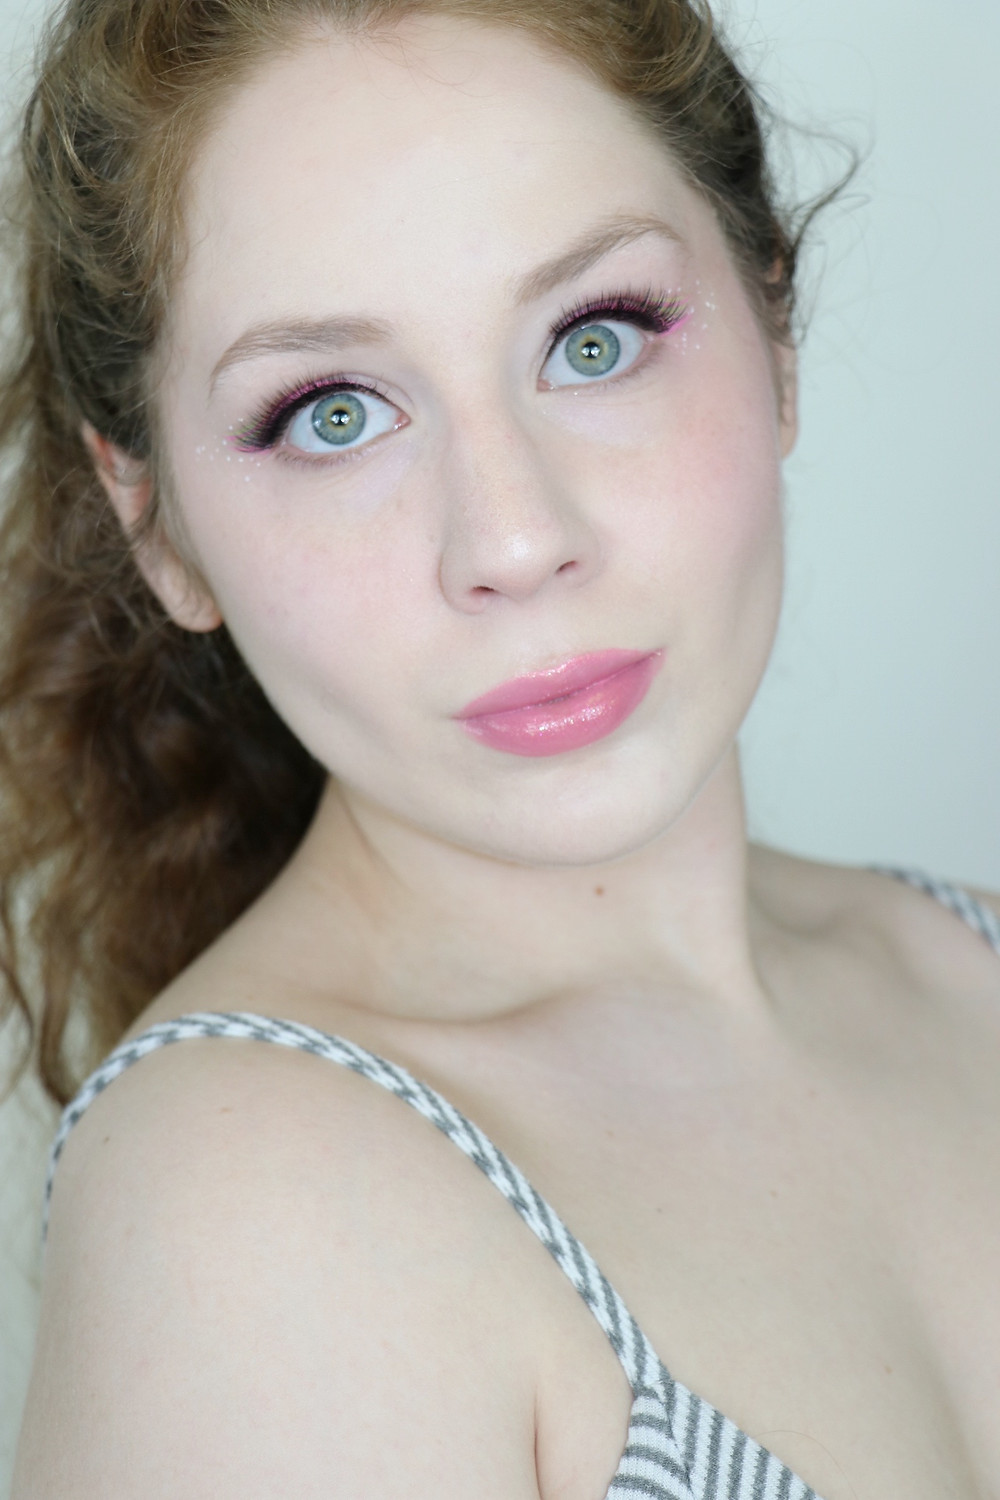 NYX Vivid Brights Graphic Eyeliner Pink and Green Summer Makeup Tutorial 2020 | Lillee Jean